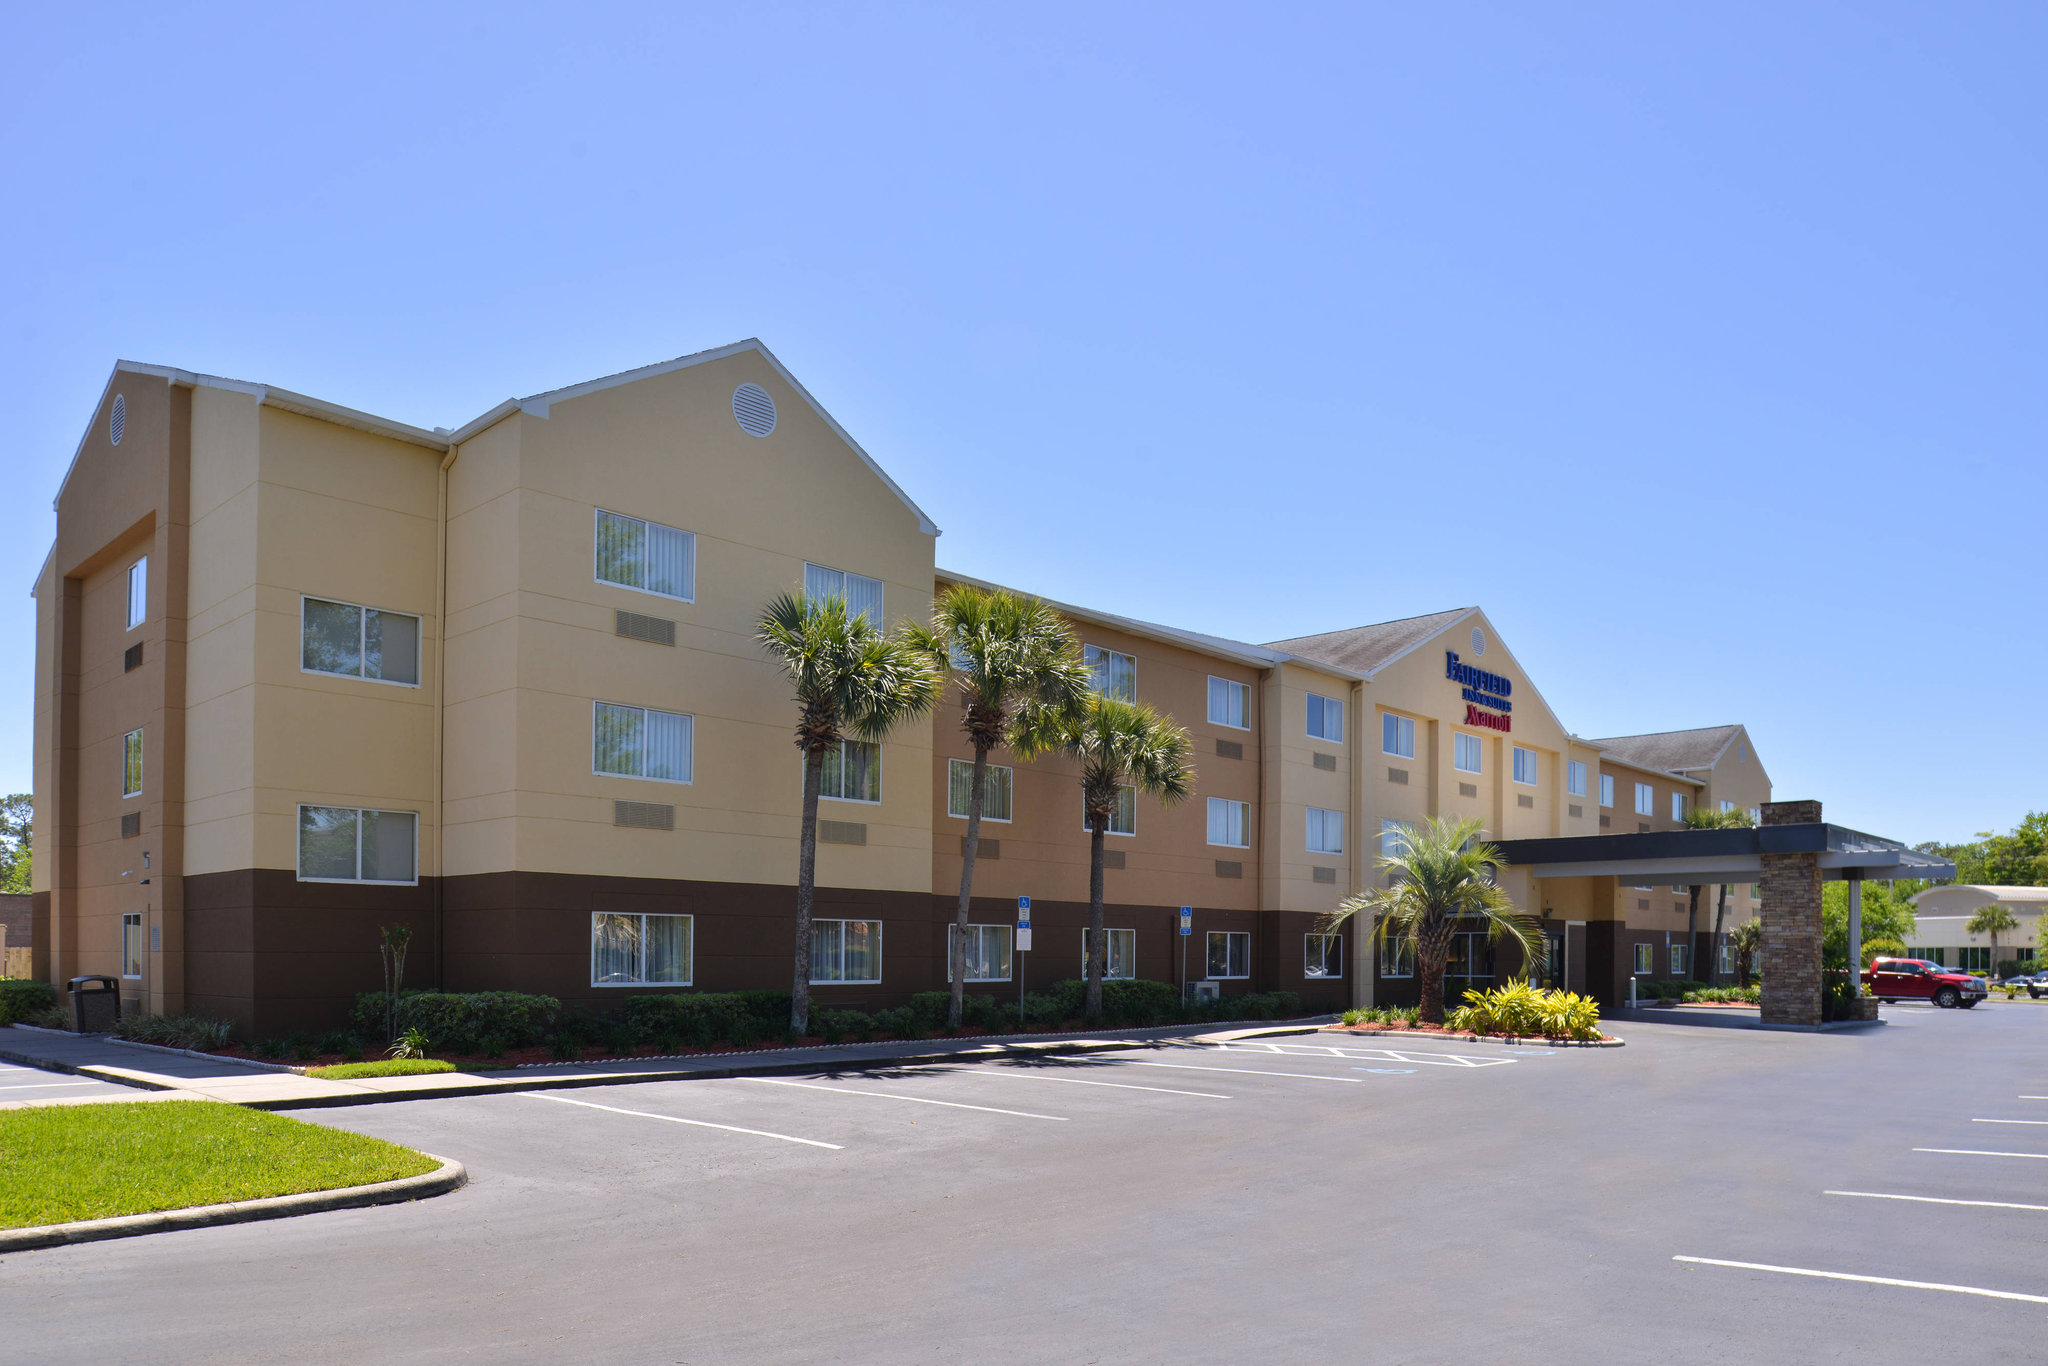 Fairfield Inn & Suites Jacksonville